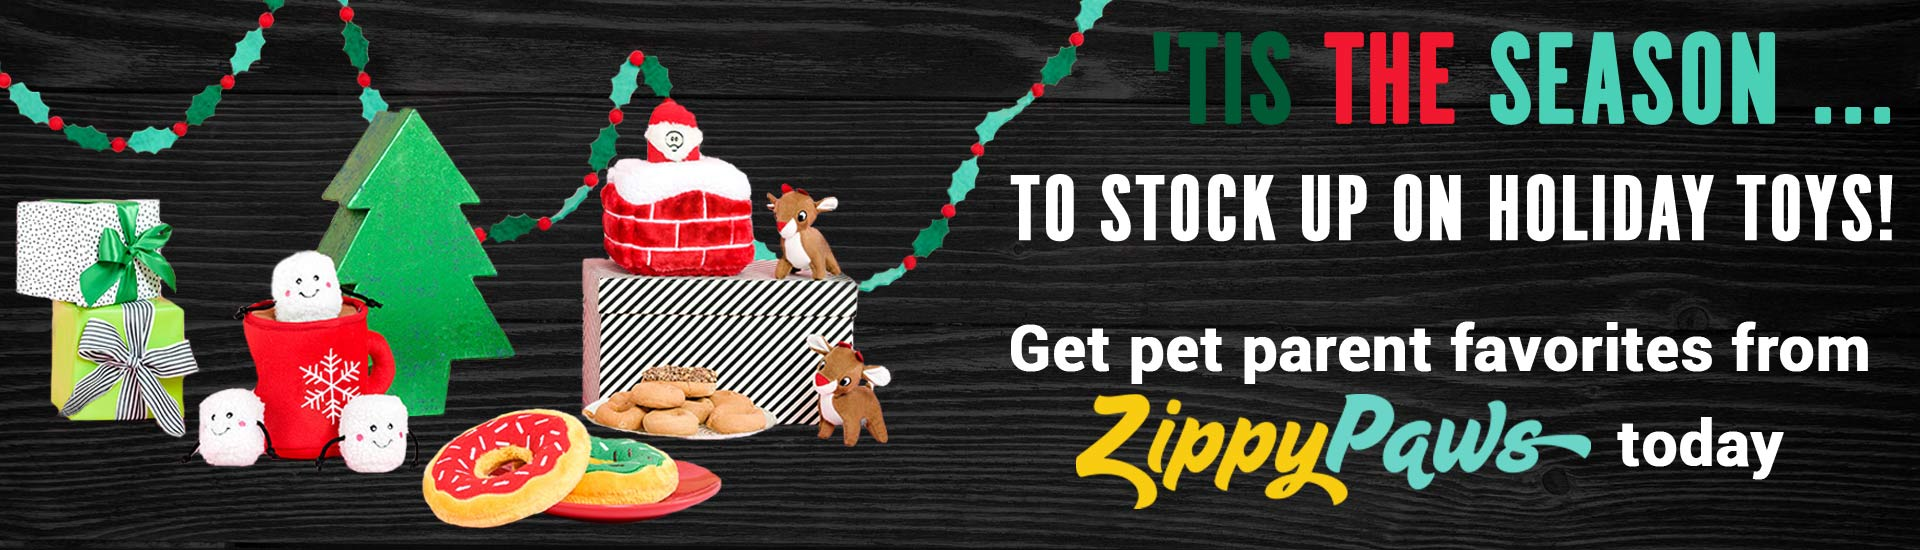 Tis the season ... to stock up on holiday toys! Get pet parent favorites from ZippyPaws today.